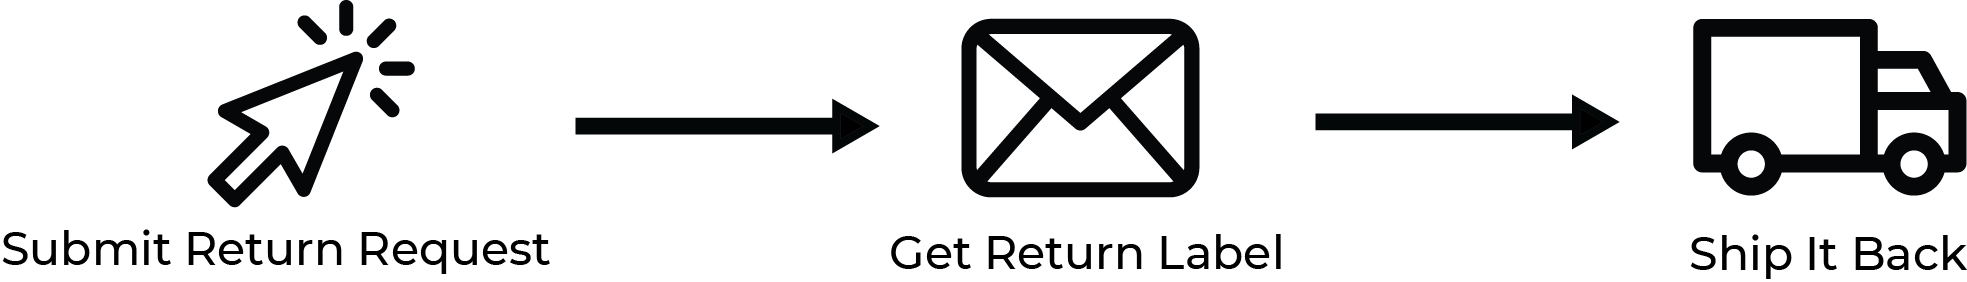 returnpolicygraphic2.png